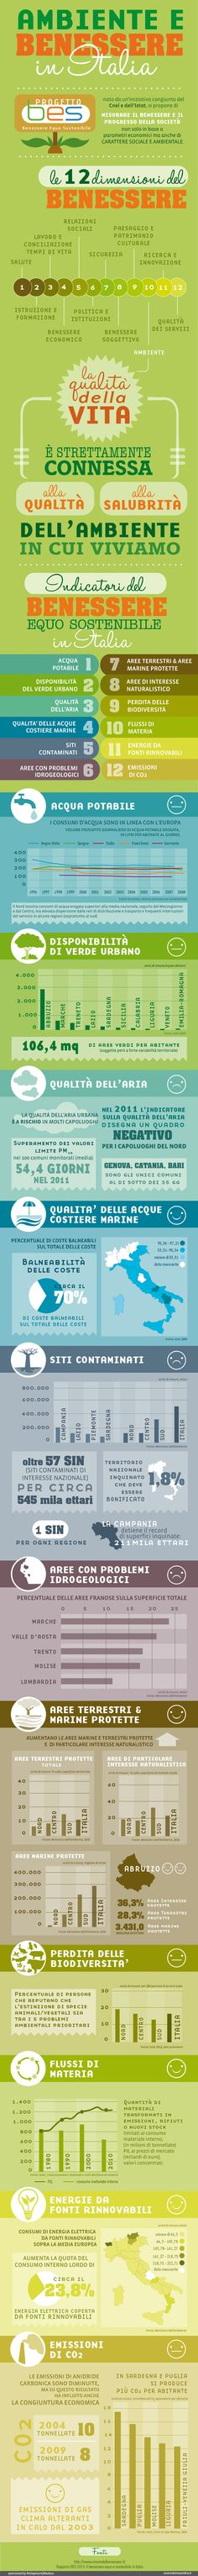 Ambiente e benessere in Italia  - infographics designed for esseredonnaonline.it- illustrated by Alice Kle Borghi, kleland.com